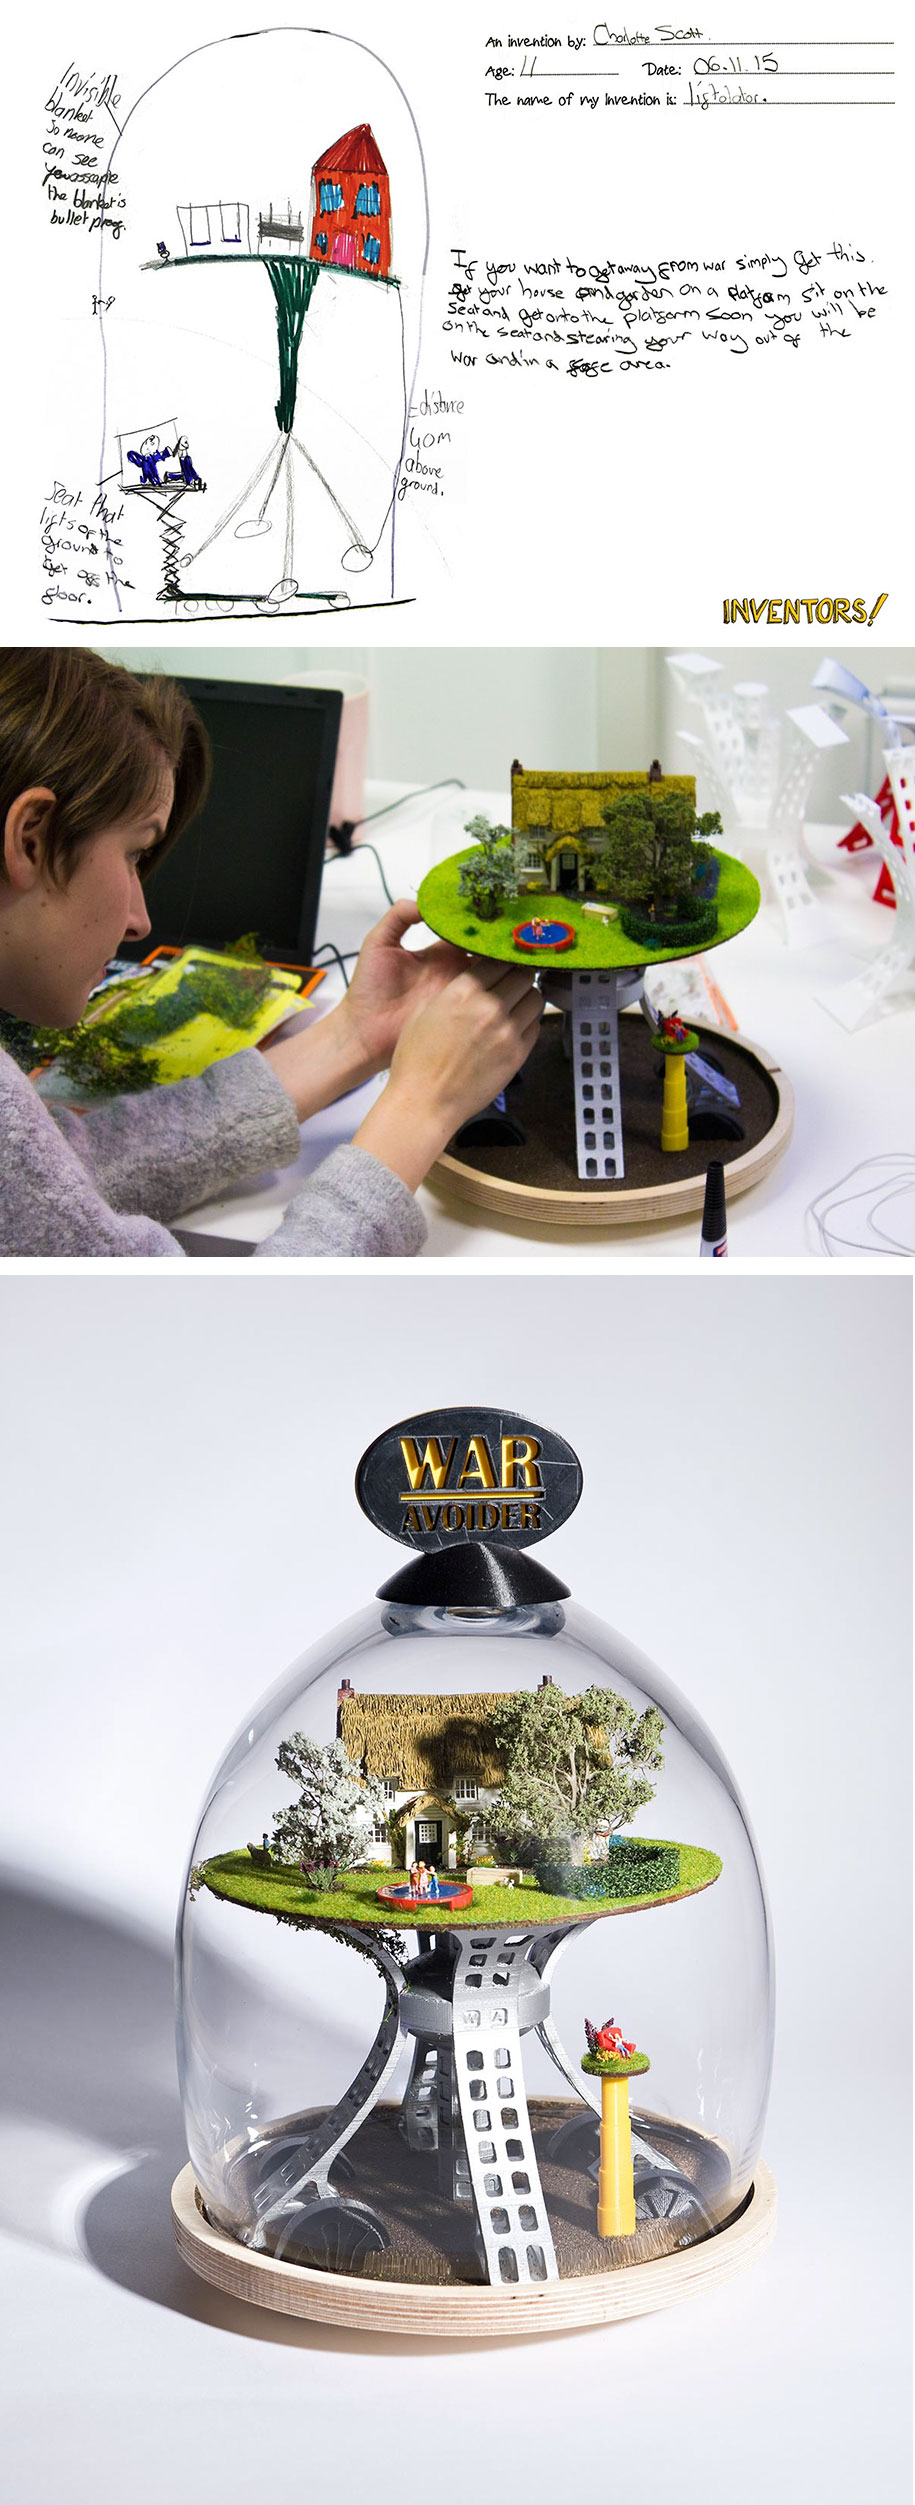 kids-inventions-real-products-inventors-project-dominic-wilcox-10